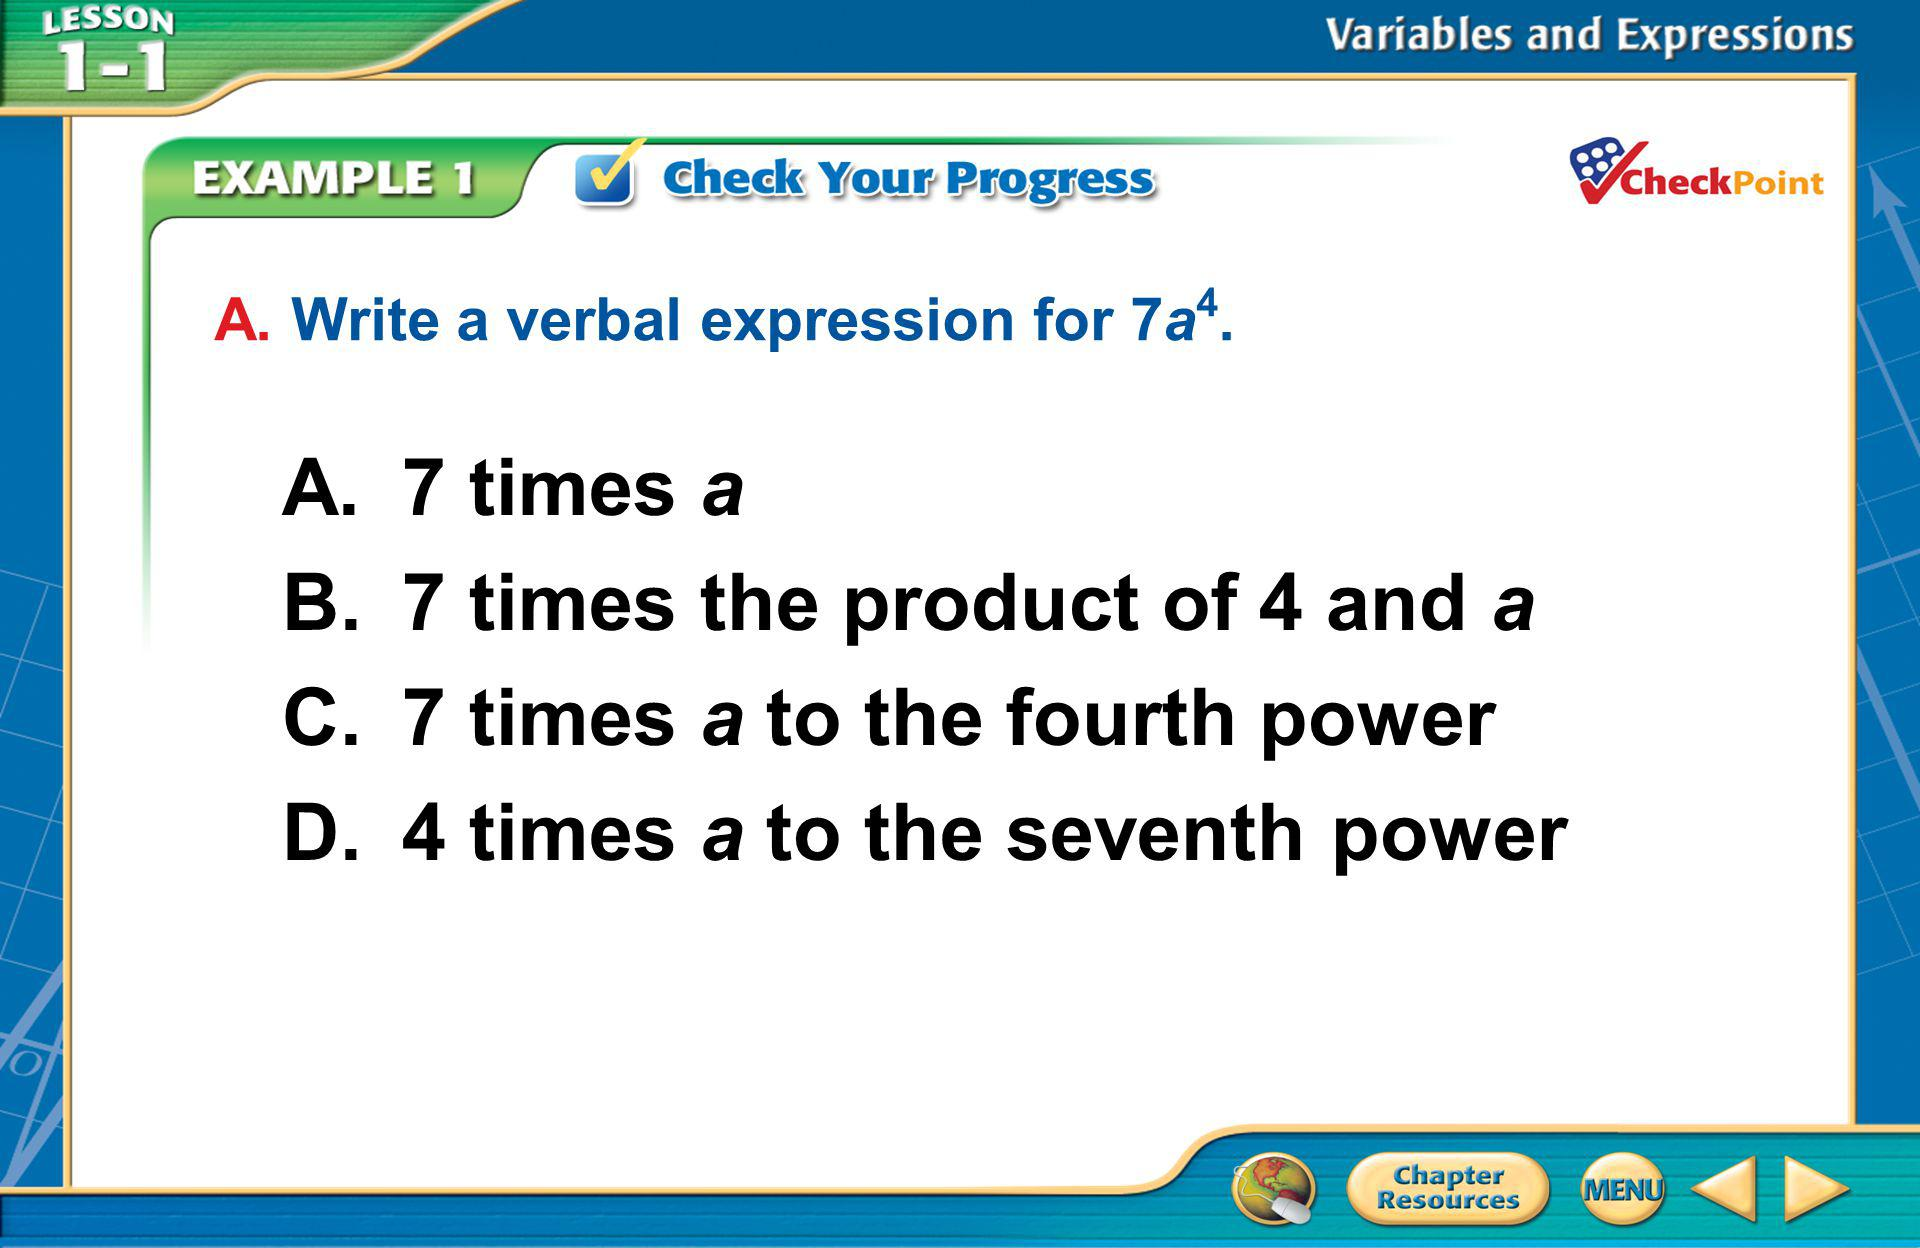 [Enter question here] A.7 times a B.7 times the product of 4 and a C.7 times a to the fourth power D.4 times a to the seventh power A. Write a verbal